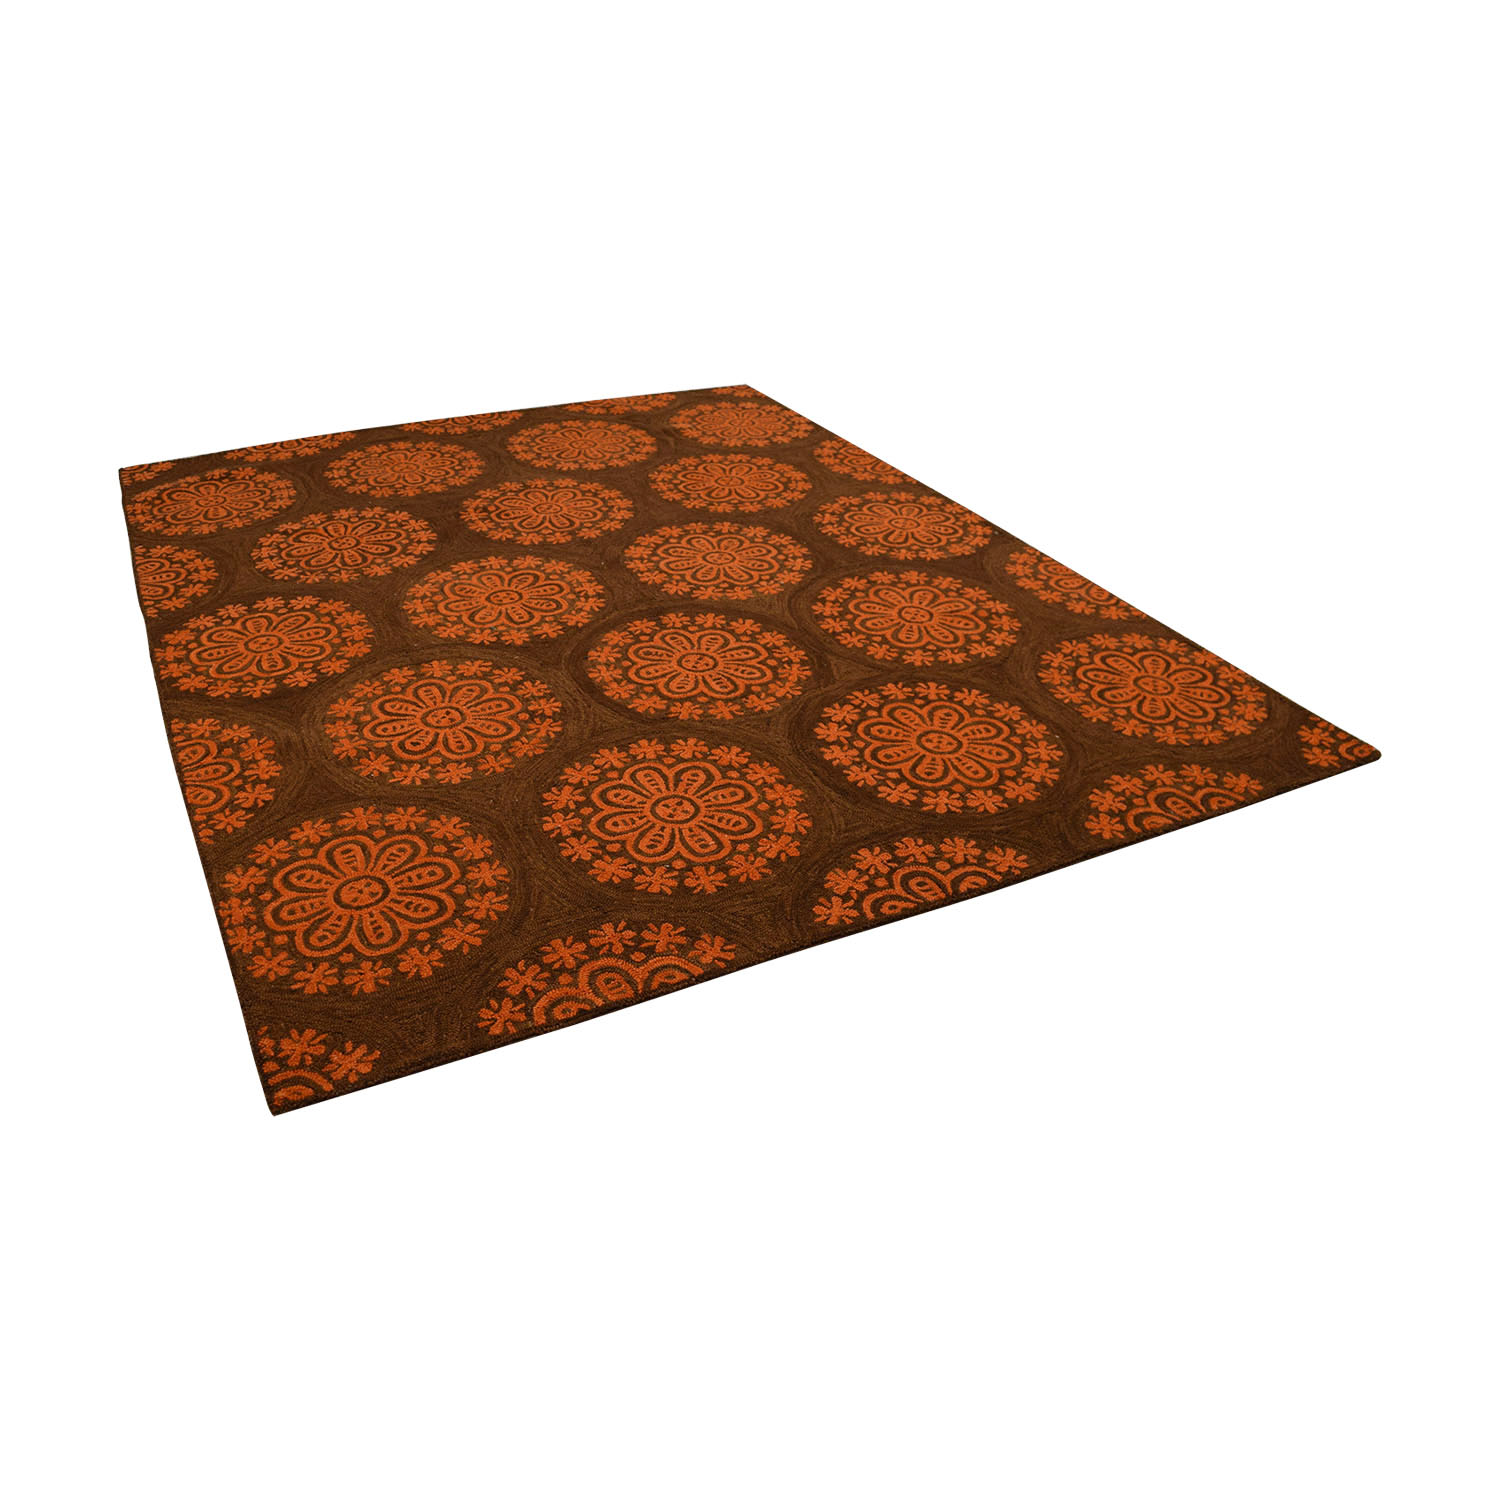 shop Obeetee Brown and Orange Floral Mediallion Rug Obeetee Decor